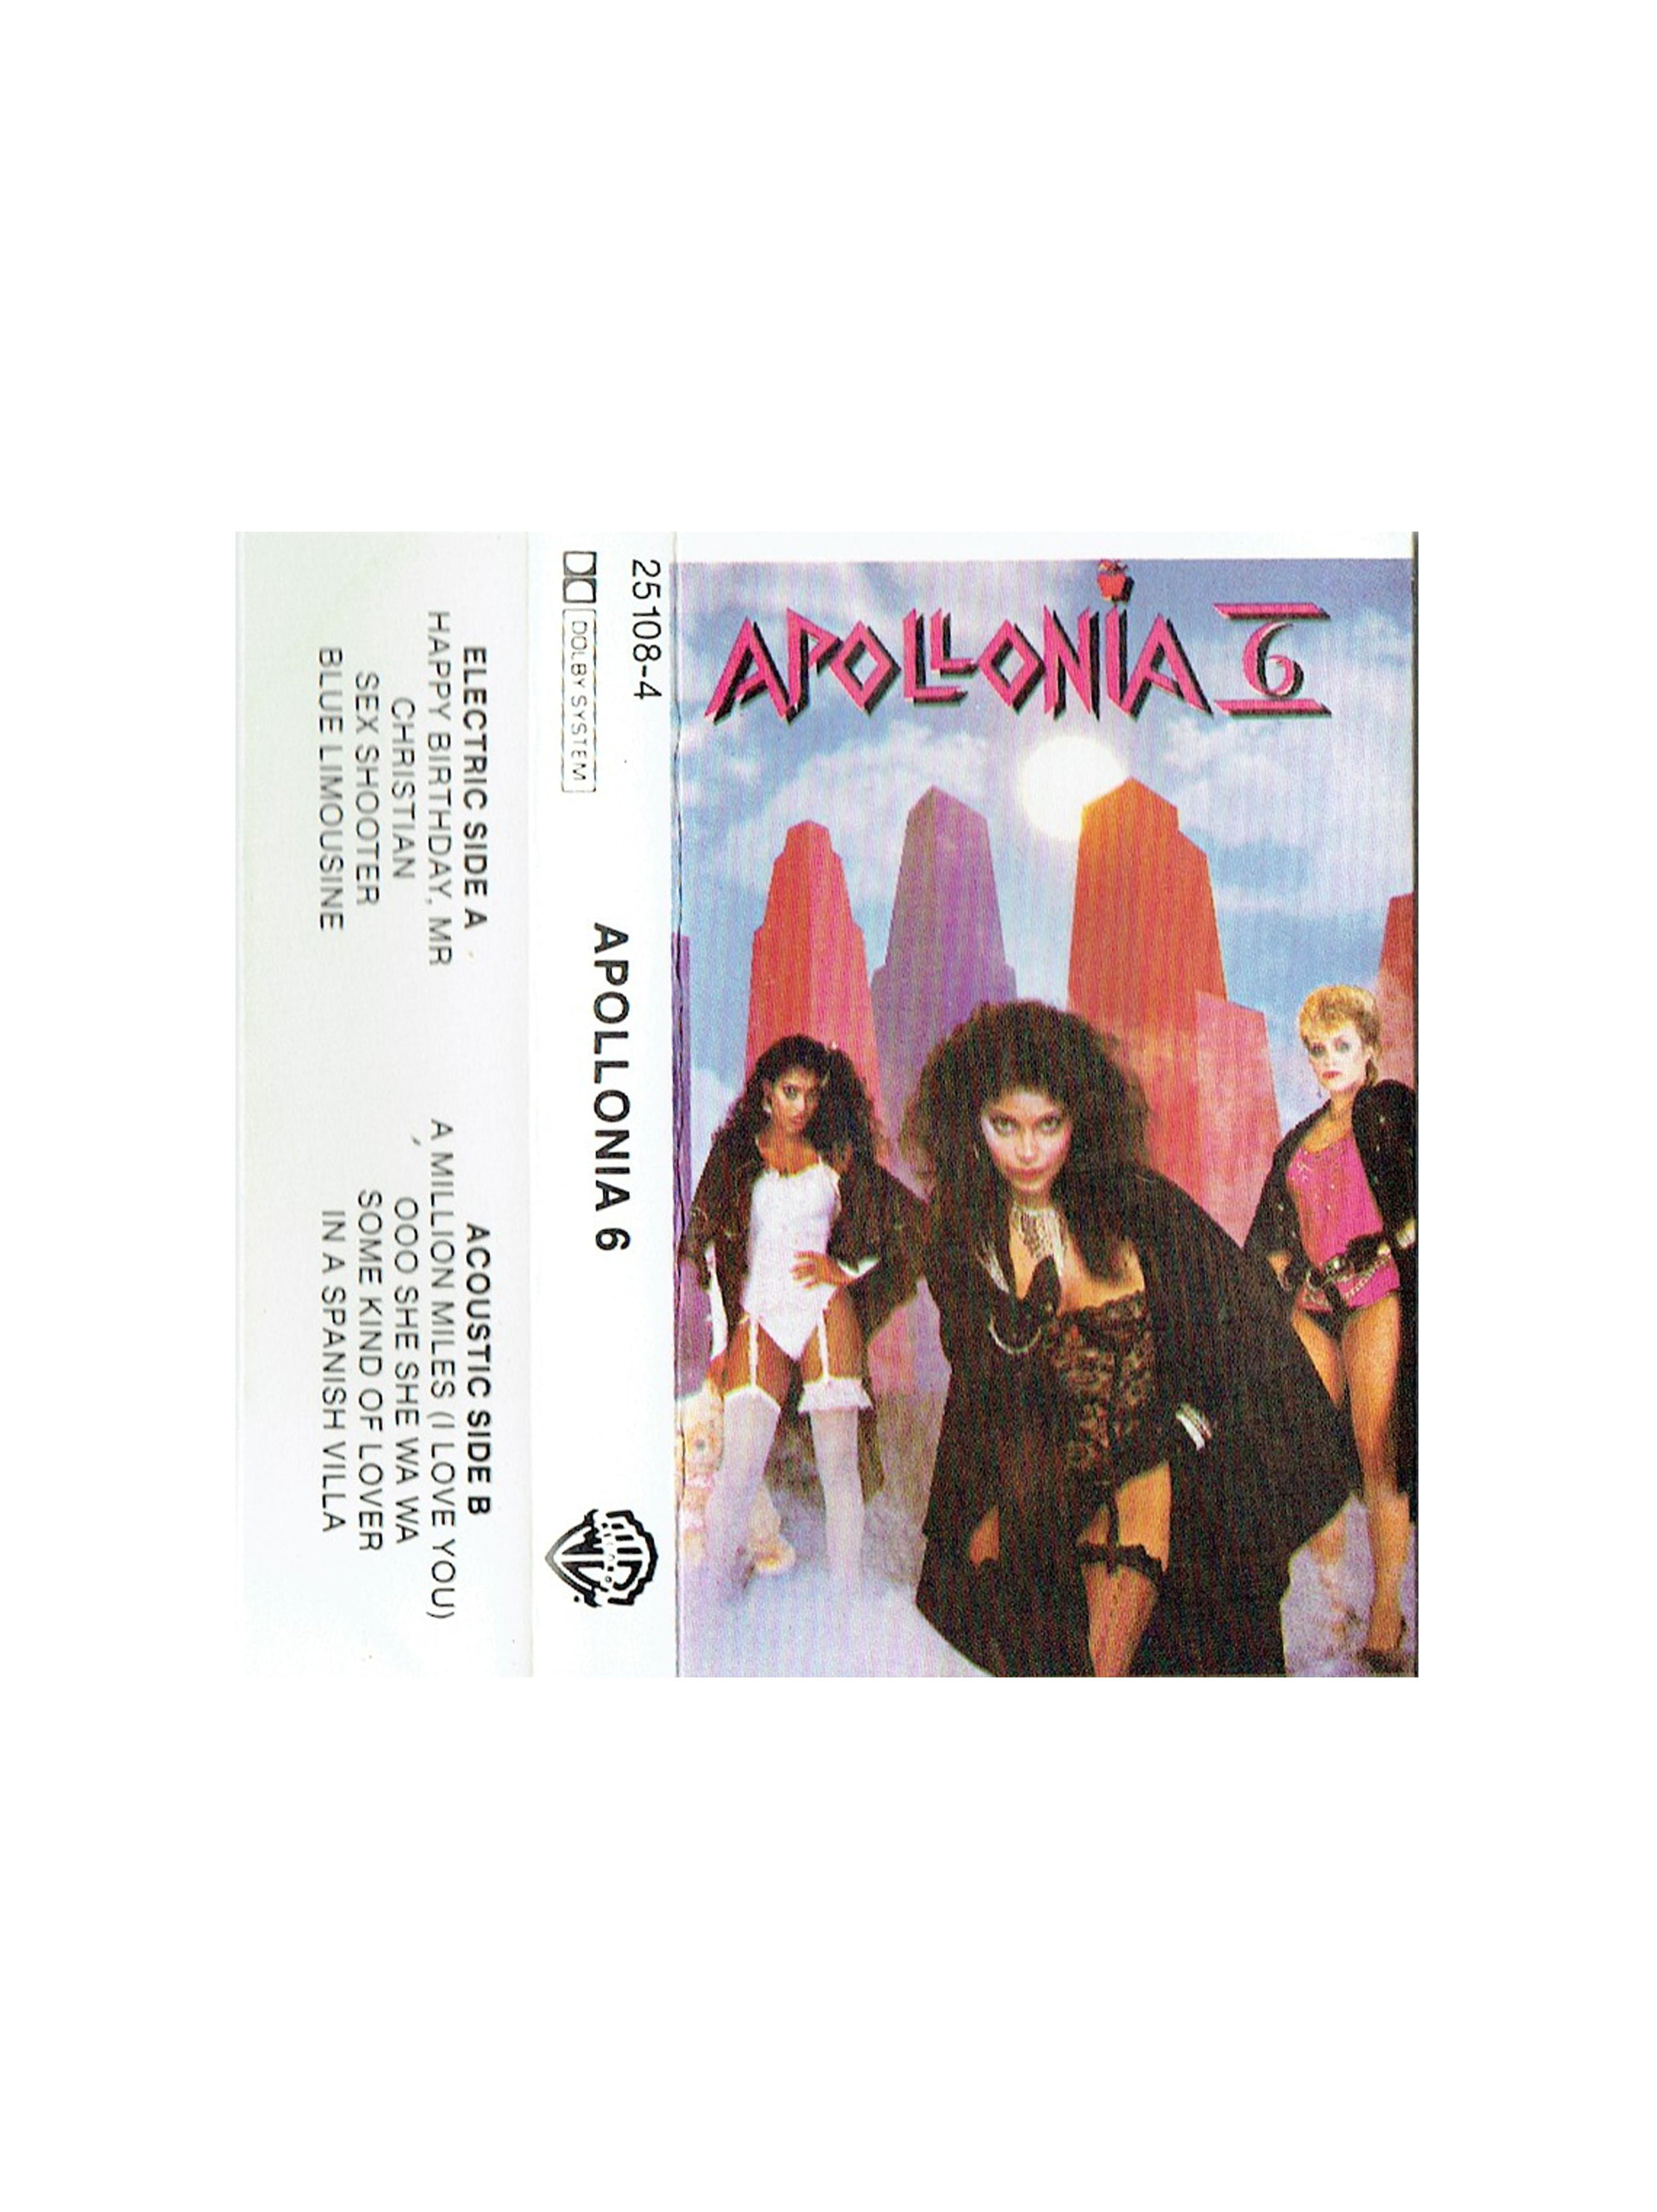 Apollonia 6 Self Titled Tape Cassette WEA Records New Zealand Release Prince